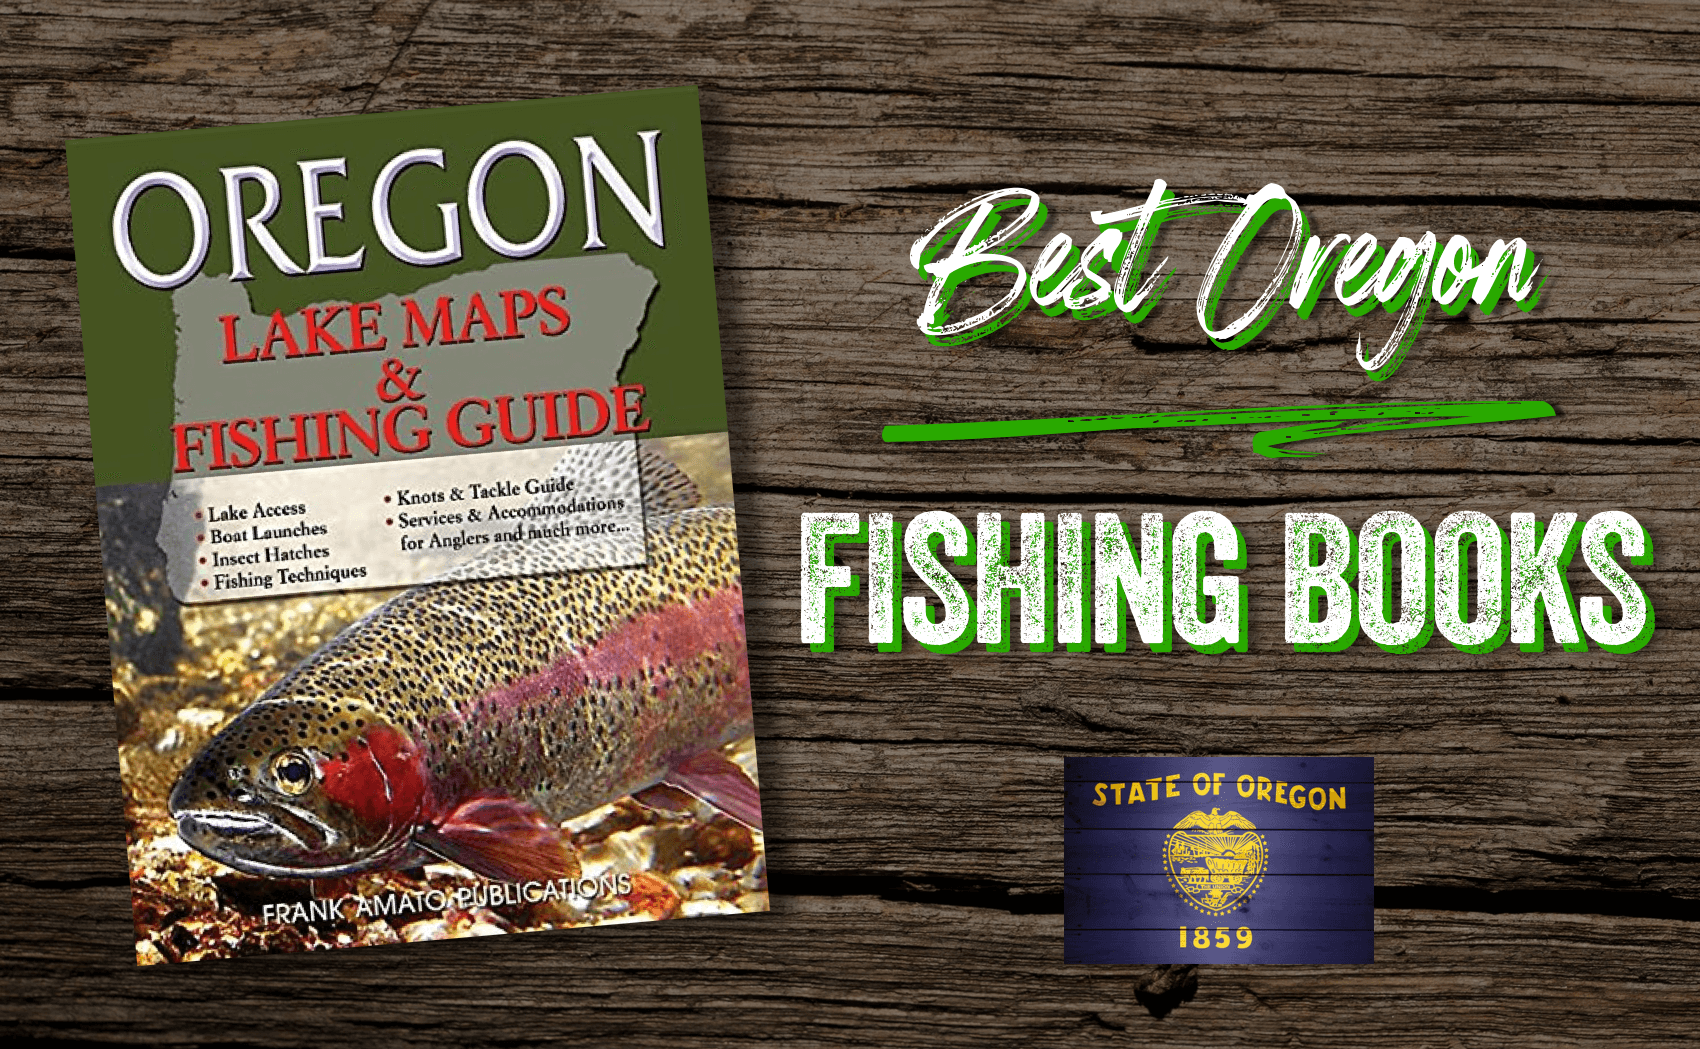 Best-Fishing-Books-Guides-in-Oregon